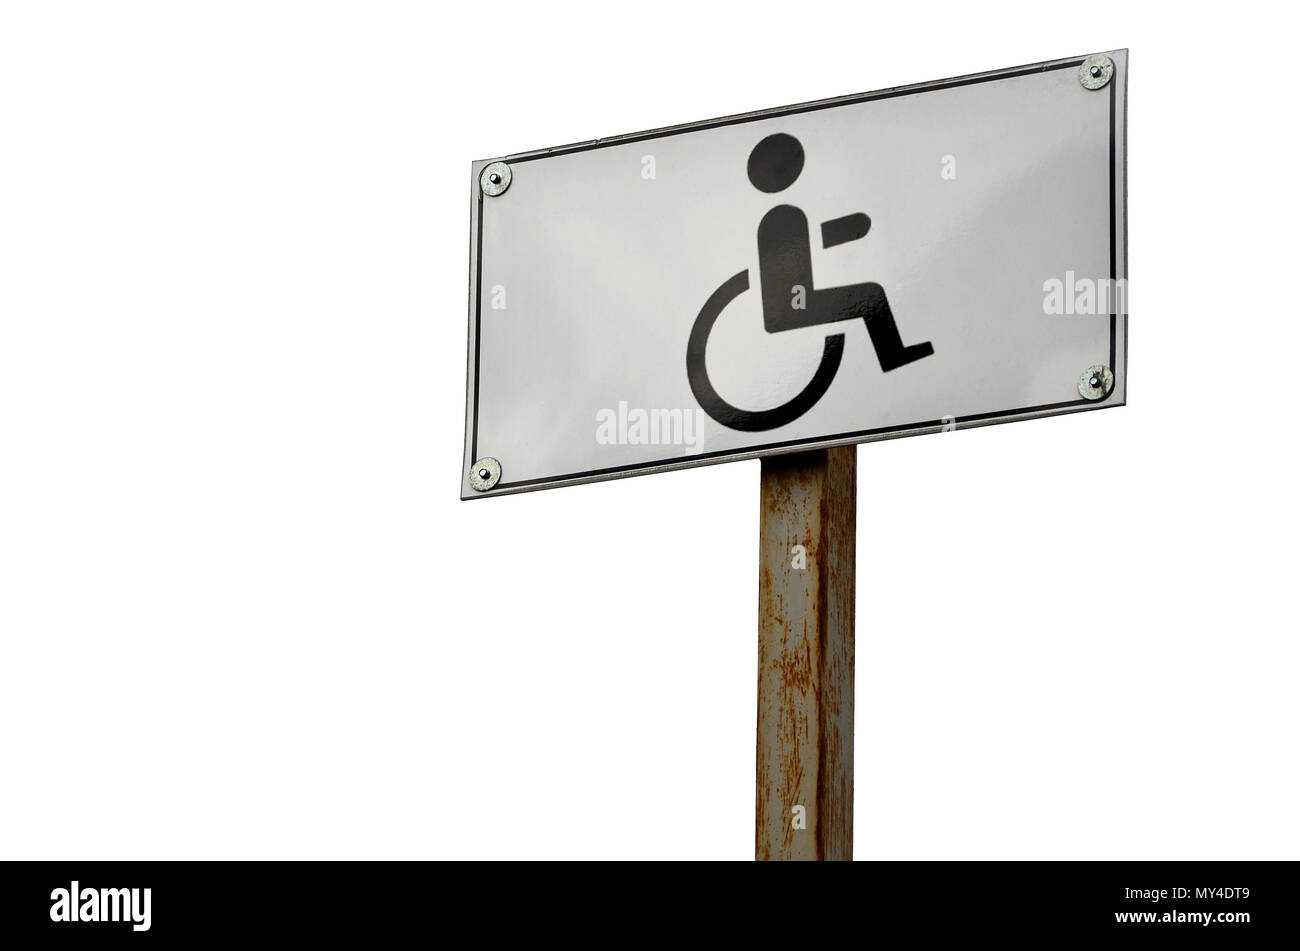 A road sign indicating the crossing of a road for disabled people. White road sign with a picture of a man sitting in a wheelchair - Stock Image